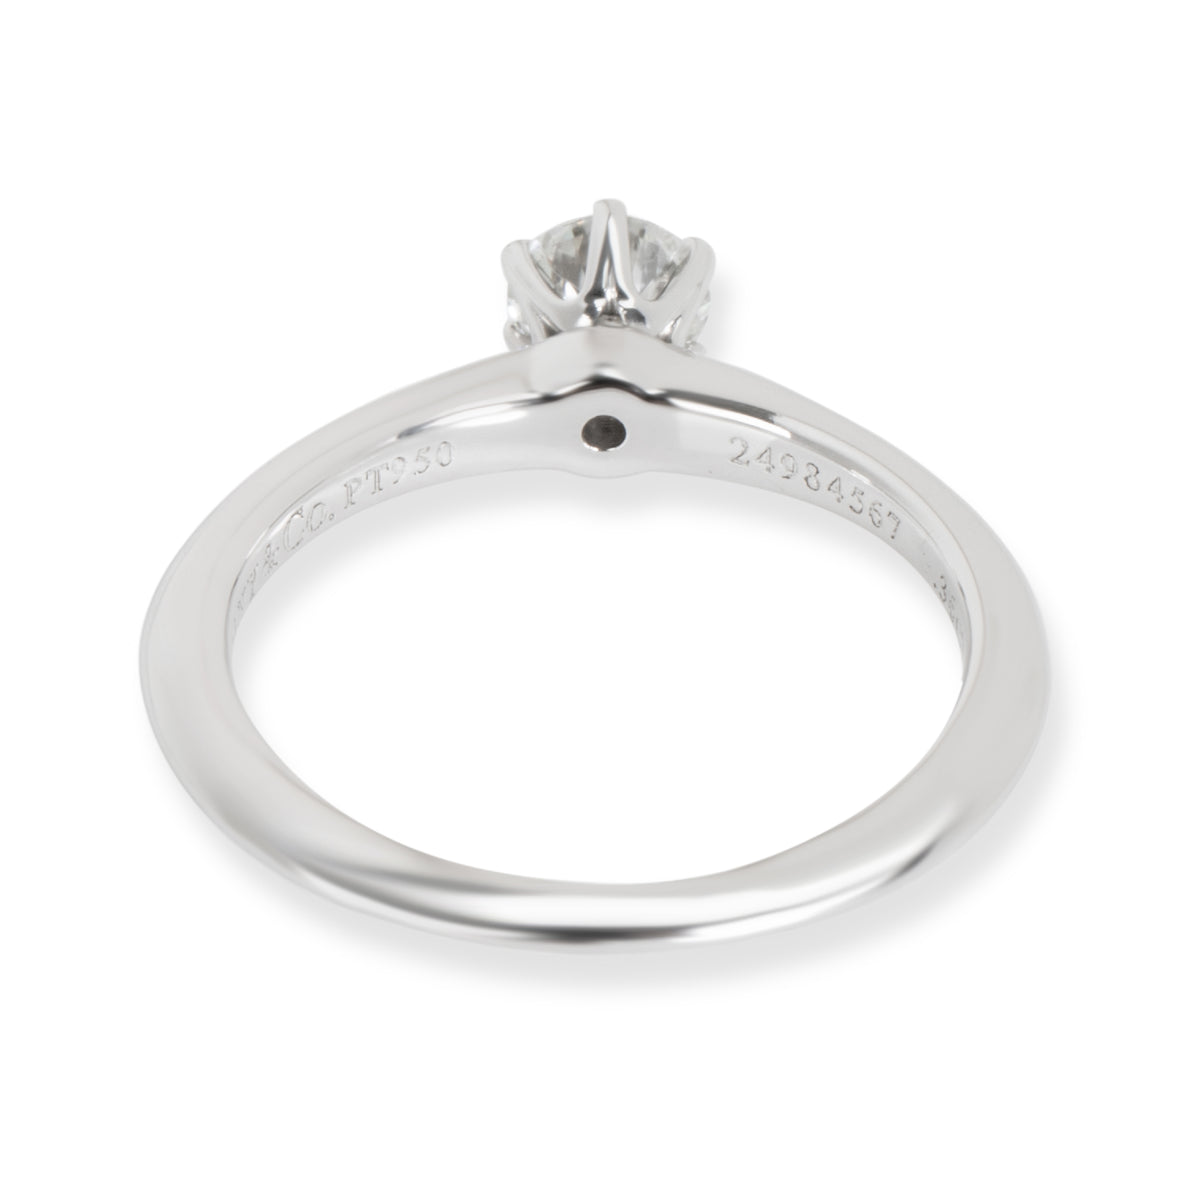 Tiffany & Co. Diamond Engagement Ring in Platinum (0.36 ct H/SI1)